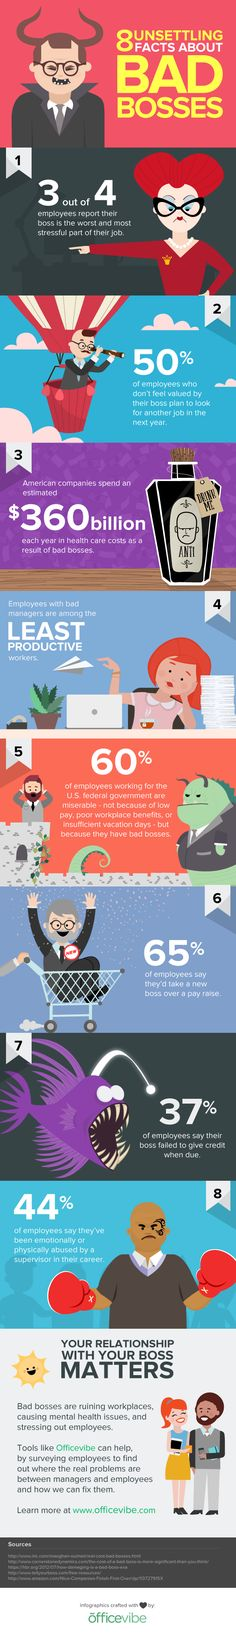 8 Unsettling Facts About Bad Bosses [Infographic]